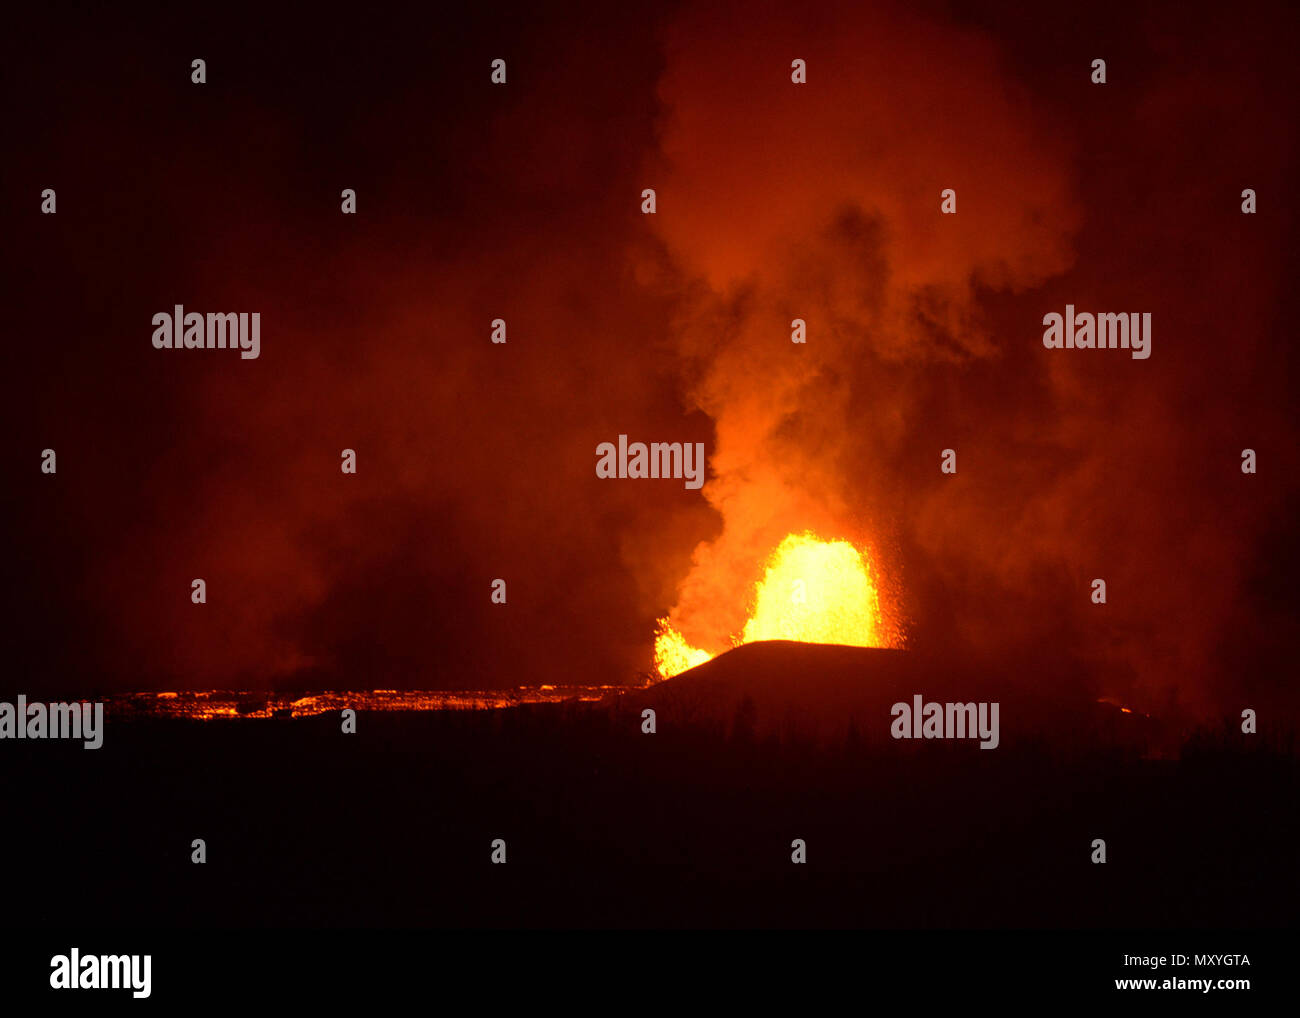 Lava erupts from a fissure in the Kilauea region near Hilo, Hawaii, during a night survey flight by UH-60 helicopter crews from the 25th Combat Aviation Brigade on June 2, 2018. The aircraft are part of an active-duty military force augmenting the Hawaii National Guard's Joint Task Force 5-0. Joint Task Force 5-0 is the military organization providing support to state and local disaster response efforts to the on-going eruptions. (Air National Guard photo by Lt. Col. Wayde Minami) - Stock Image